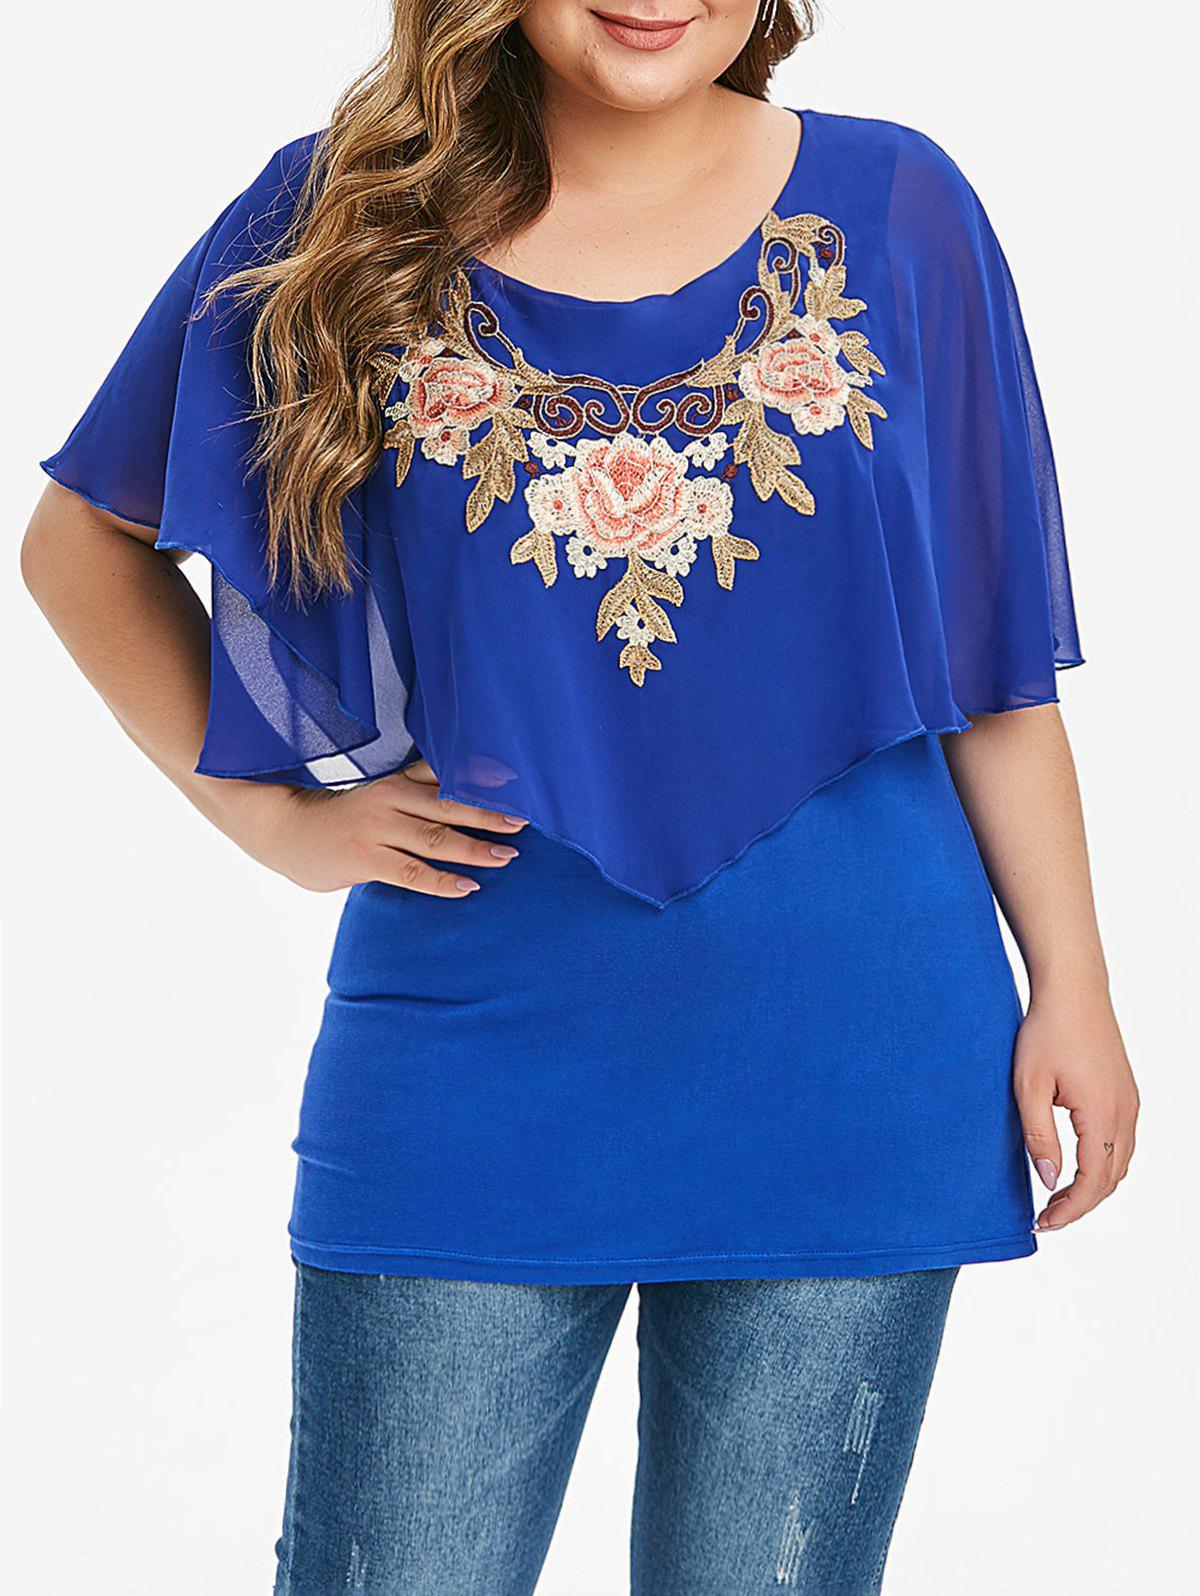 Floral Embroidered Overlay Chiffon Panel Plus Size Blouse - BLUE 5X